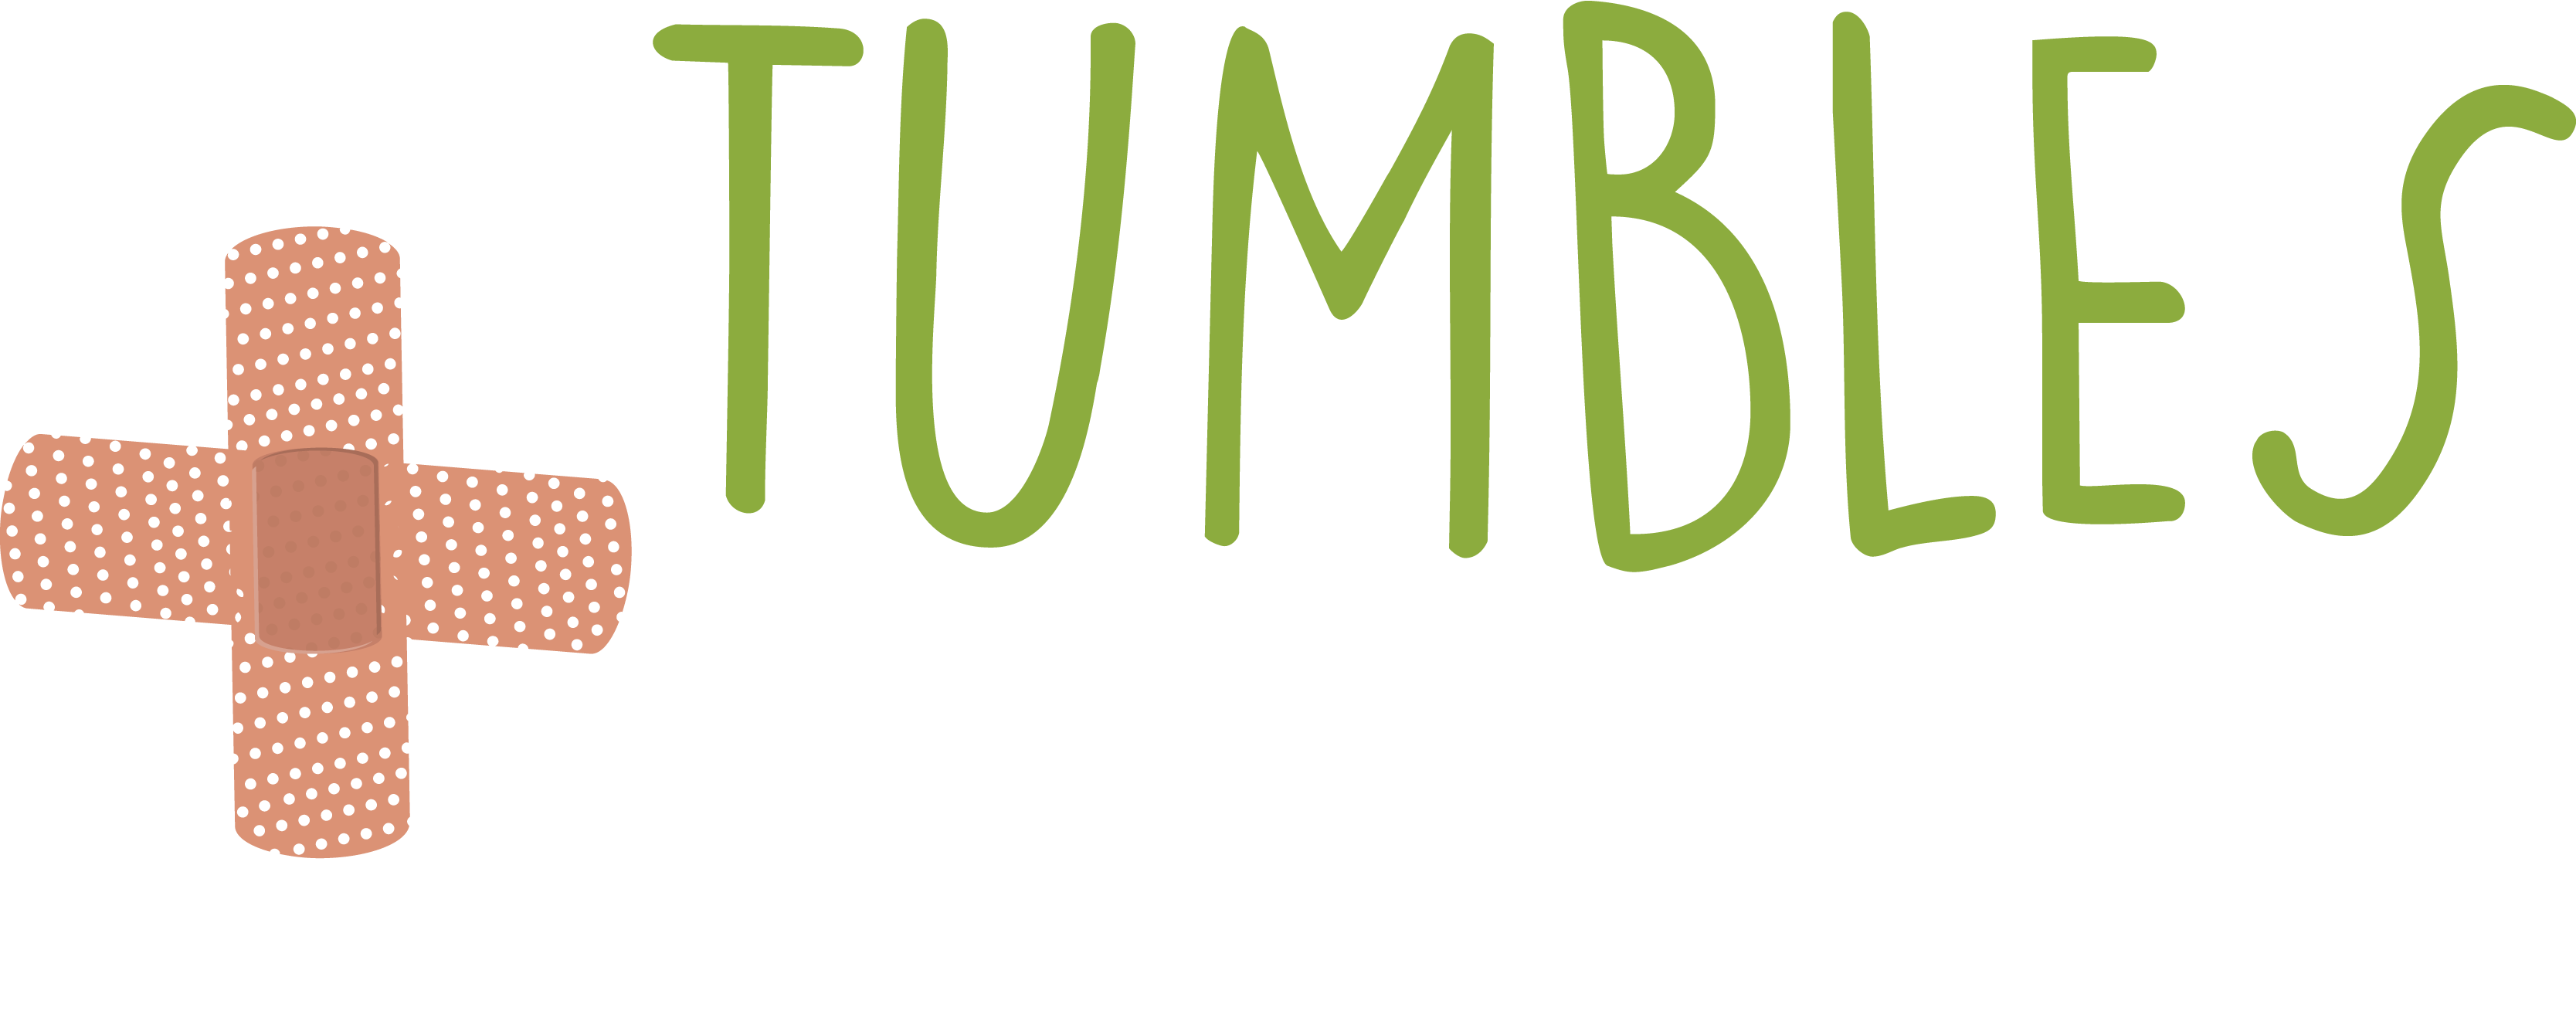 Tumbles and Grumbles